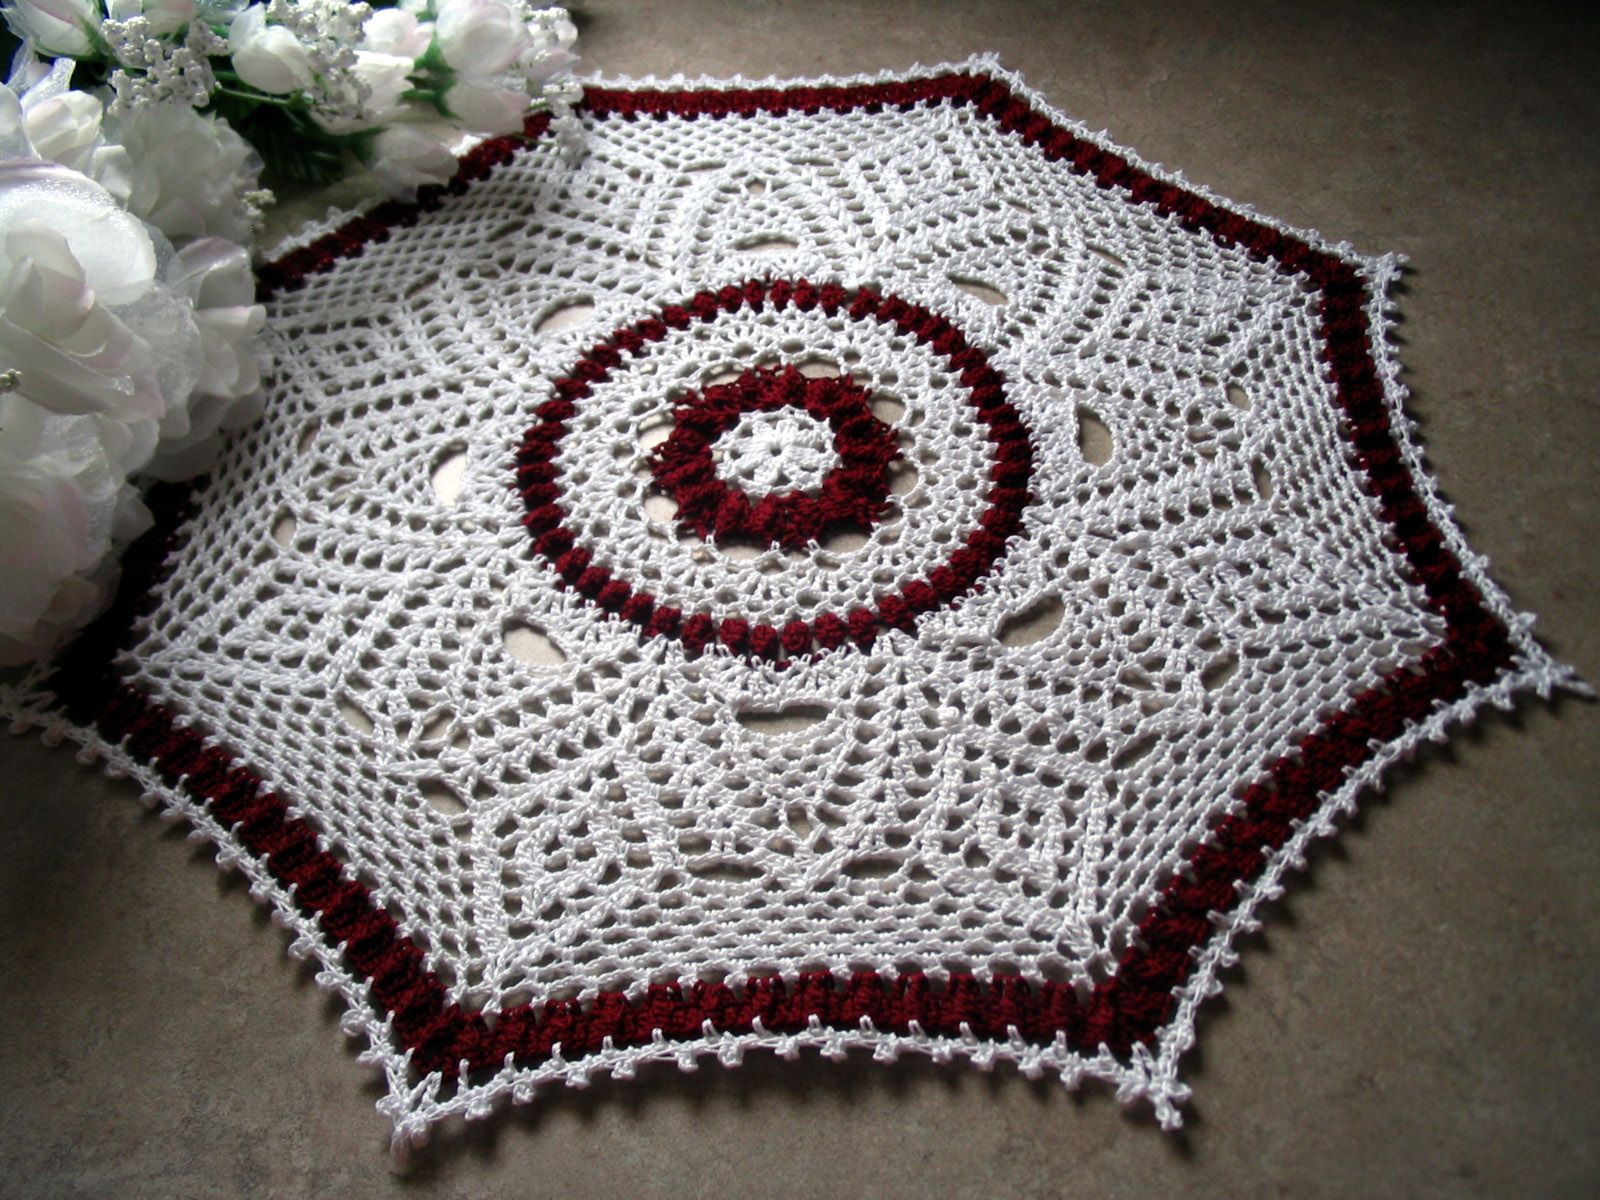 Linda Crochets: New doilies blocked | Crochet Faves | Pinterest